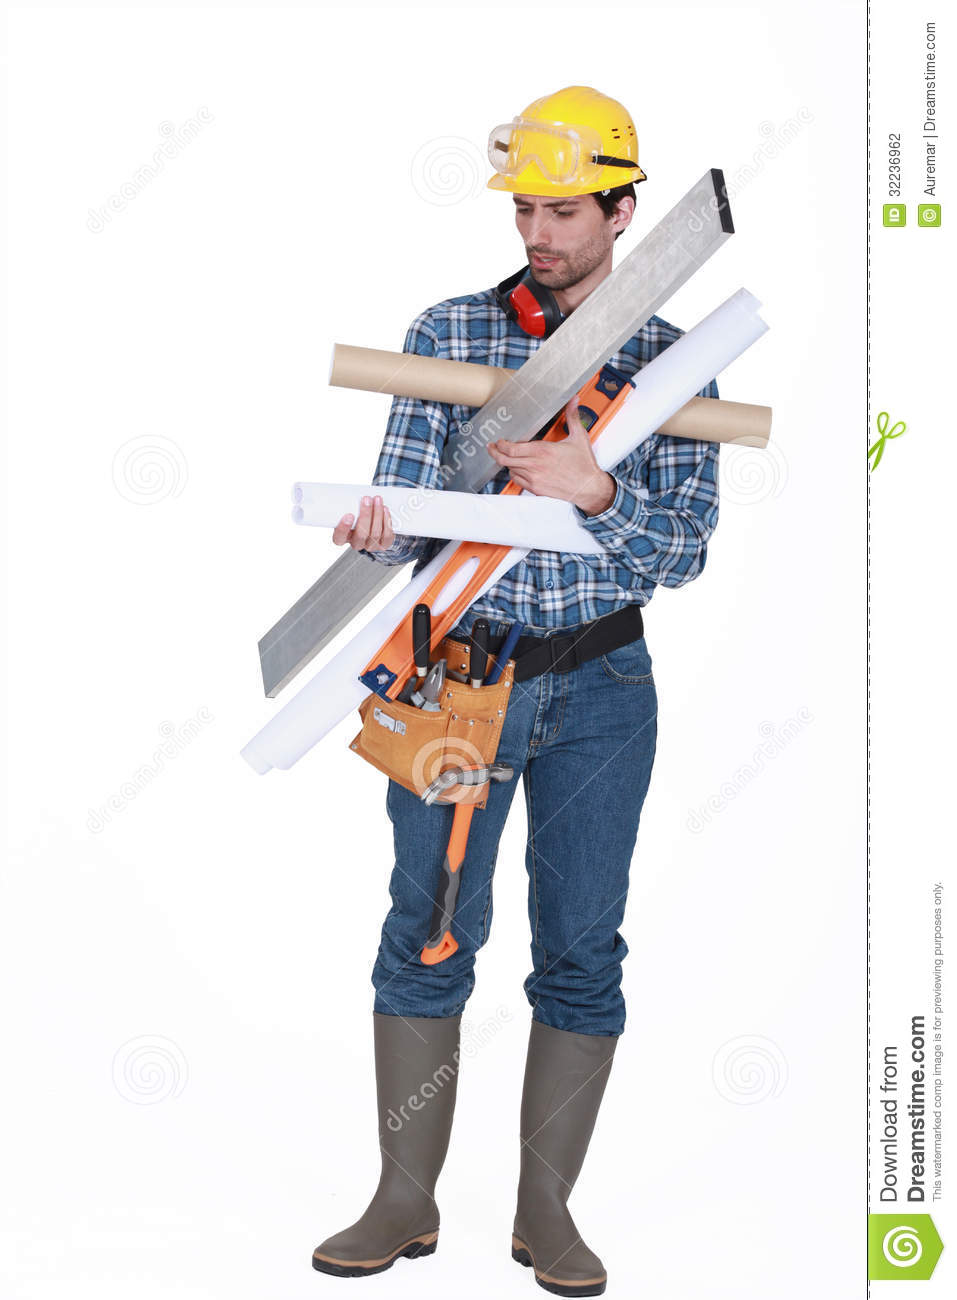 Carpenter carrying miscellaneous tools